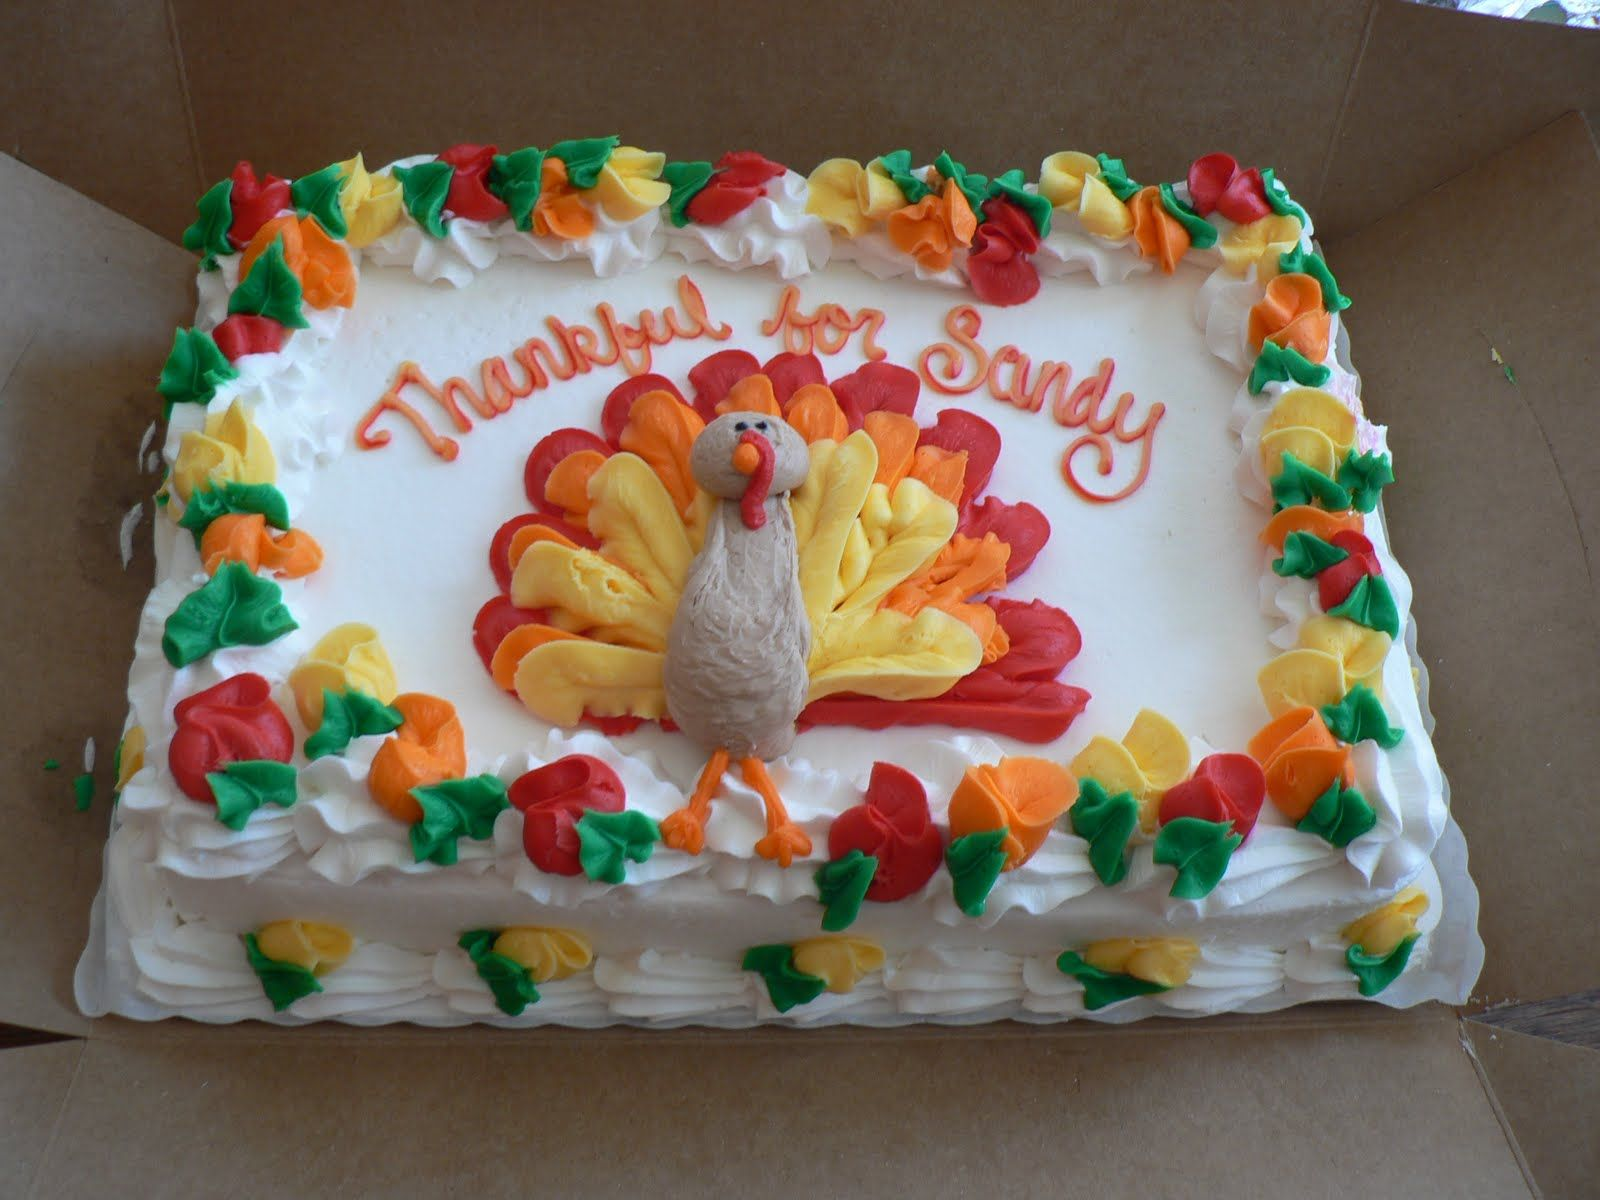 Thanksgiving Cakes     Decoration Ideas   Little Birthday Cakes     Thanksgiving Cakes     Decoration Ideas   Little Birthday Cakes